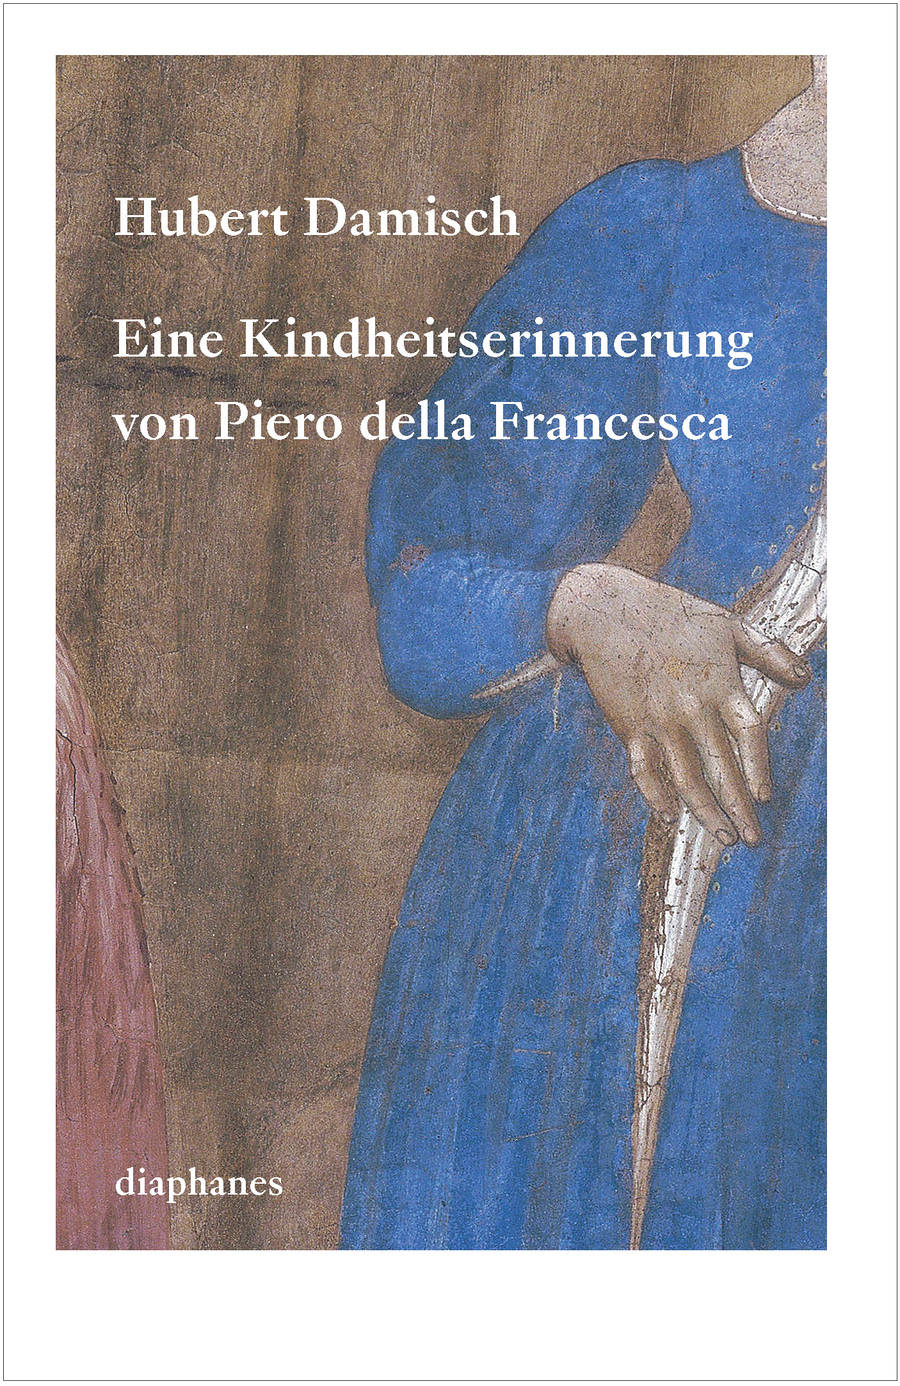 a review of hubert damischs the underneaths of painting Review of contemporary fiction , damisch uses piero's enigmatic painting to narrate our archaic memories damisch, hubert 1928-damish.